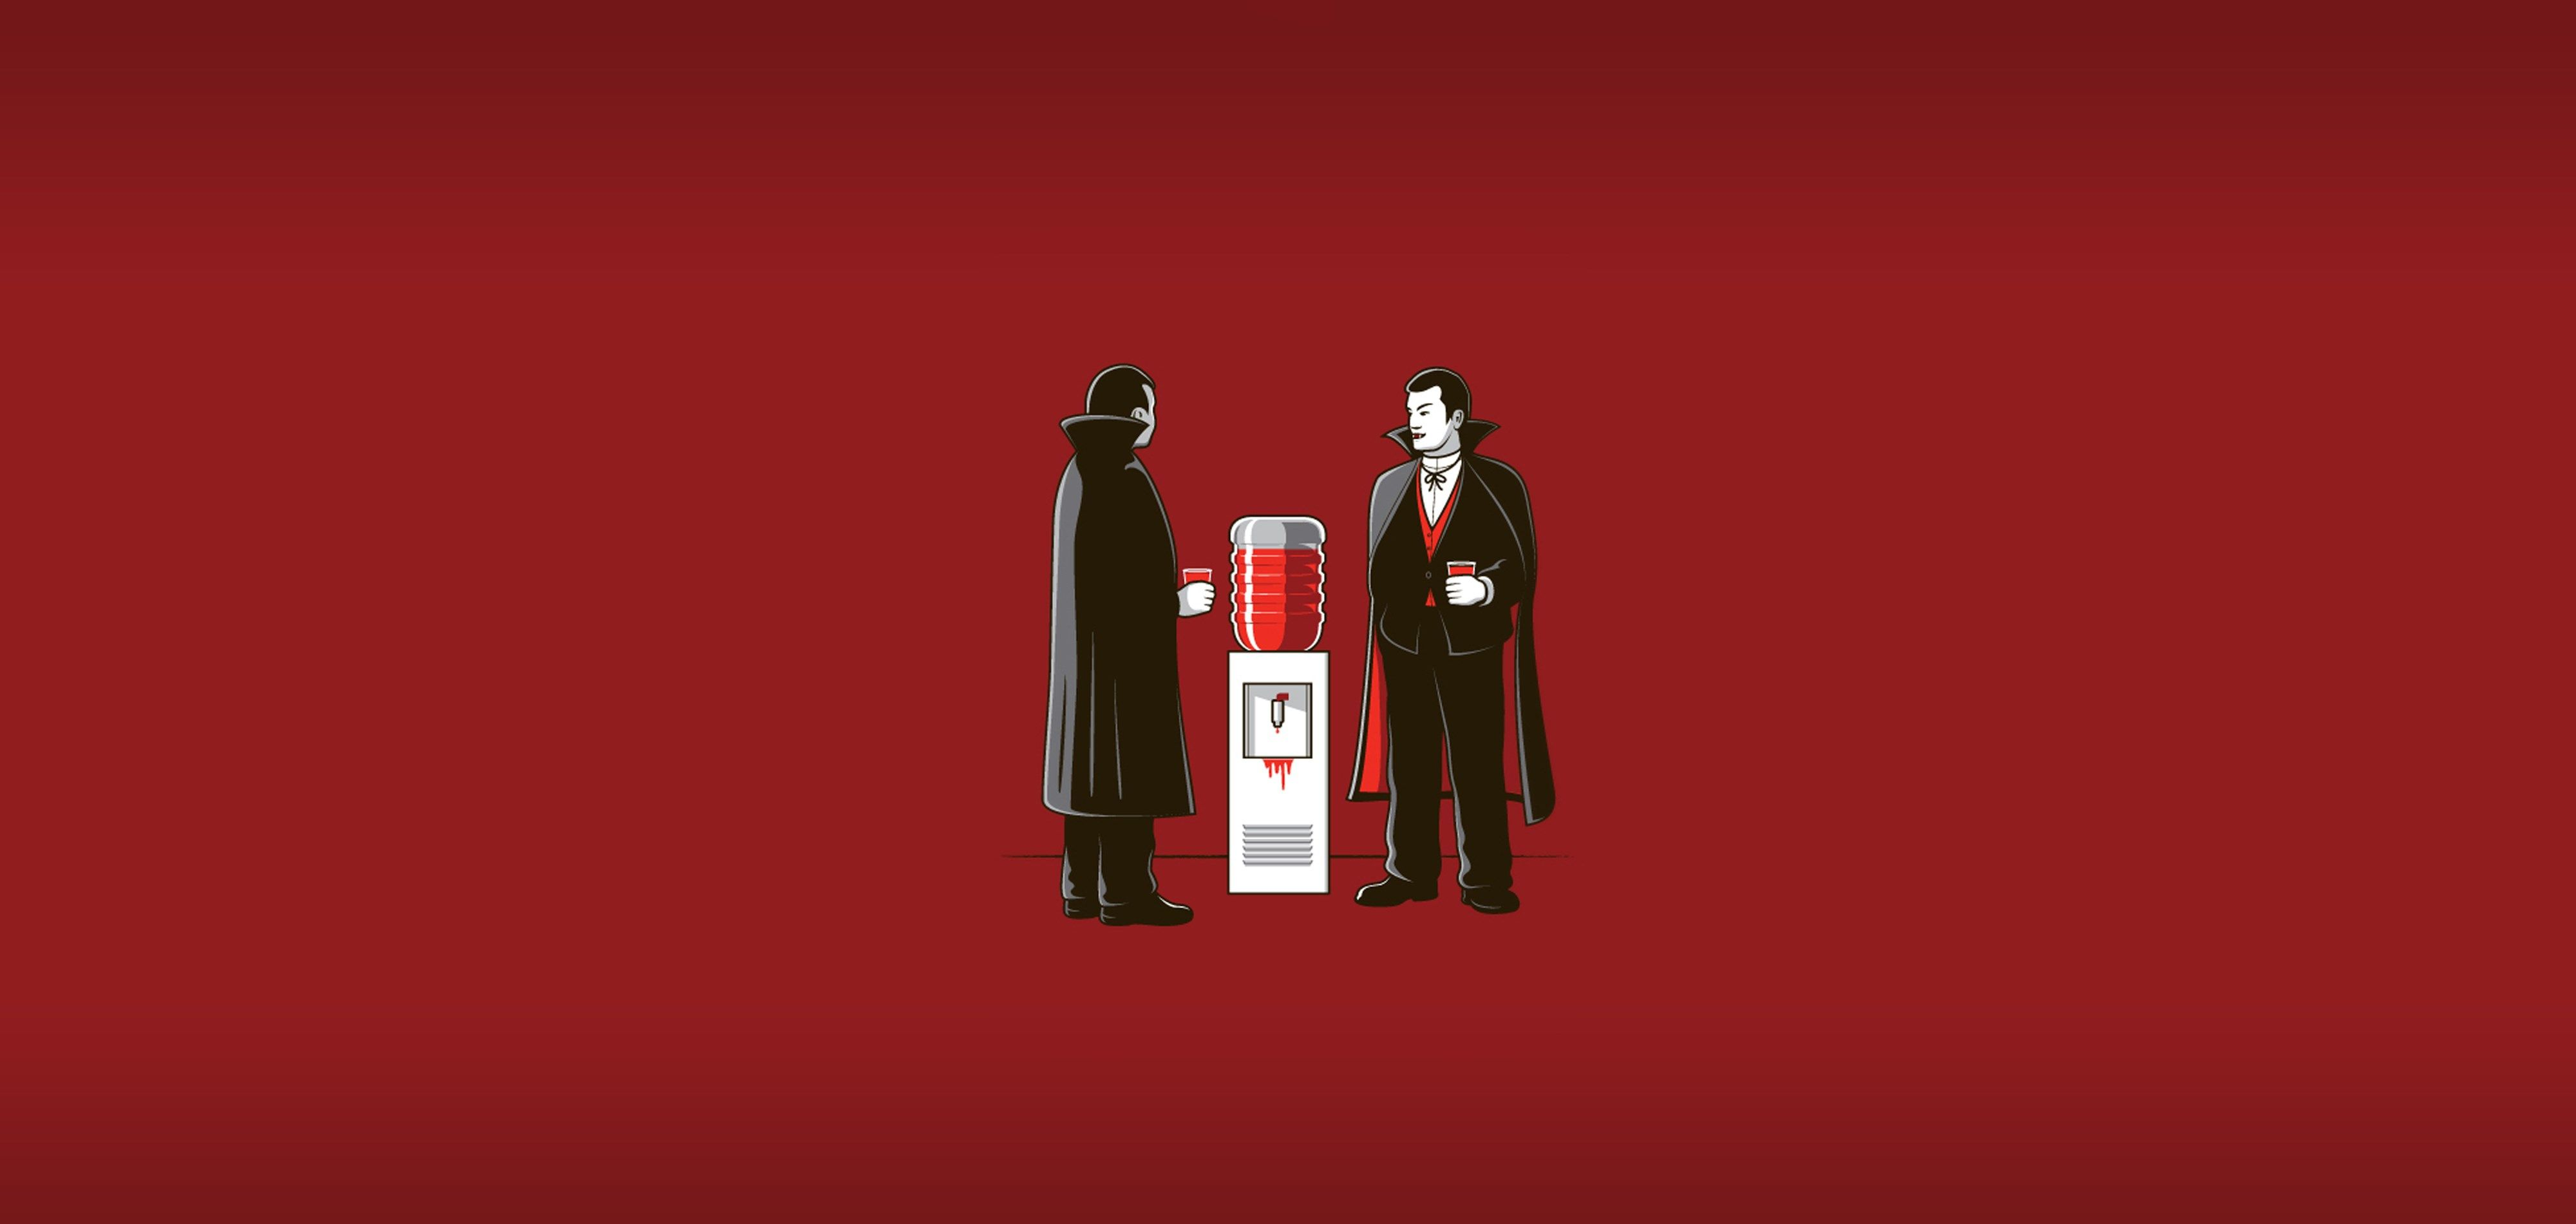 4000x1900 Free Computer Dracula Funny Wallpapers Funny Photoshop Hd Wallpaper